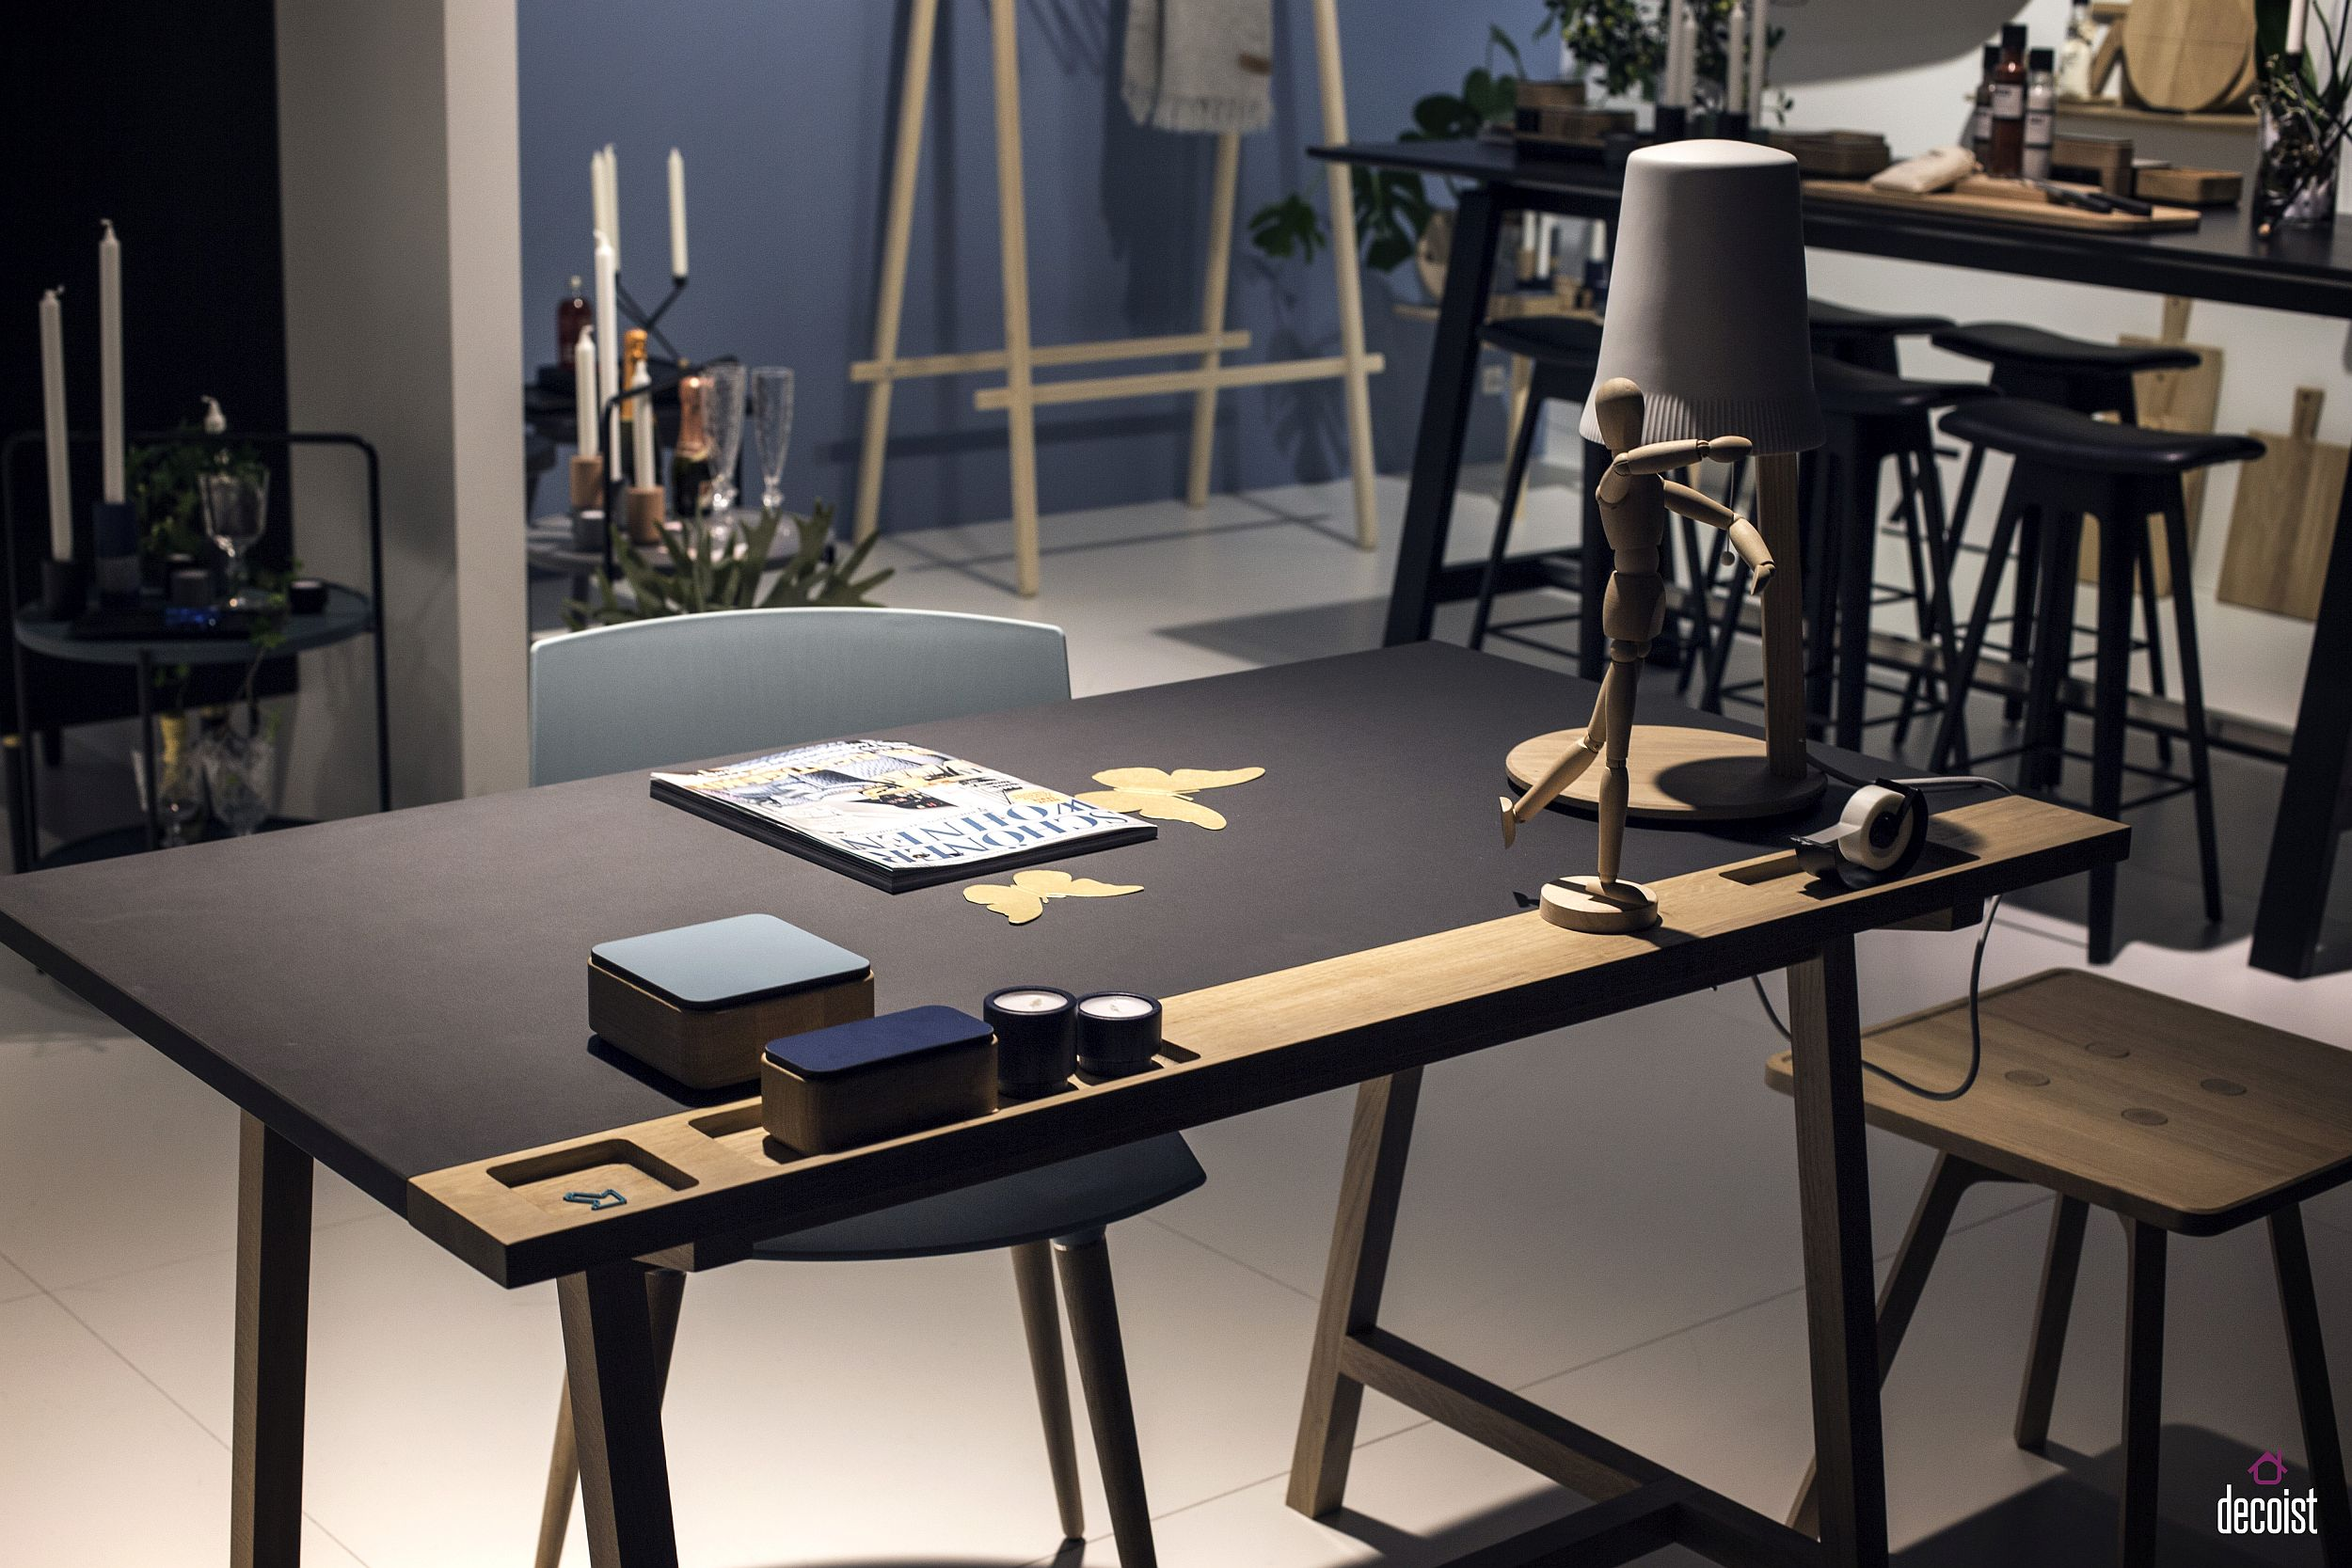 D1 Desk by KATO from Andersen Furniture